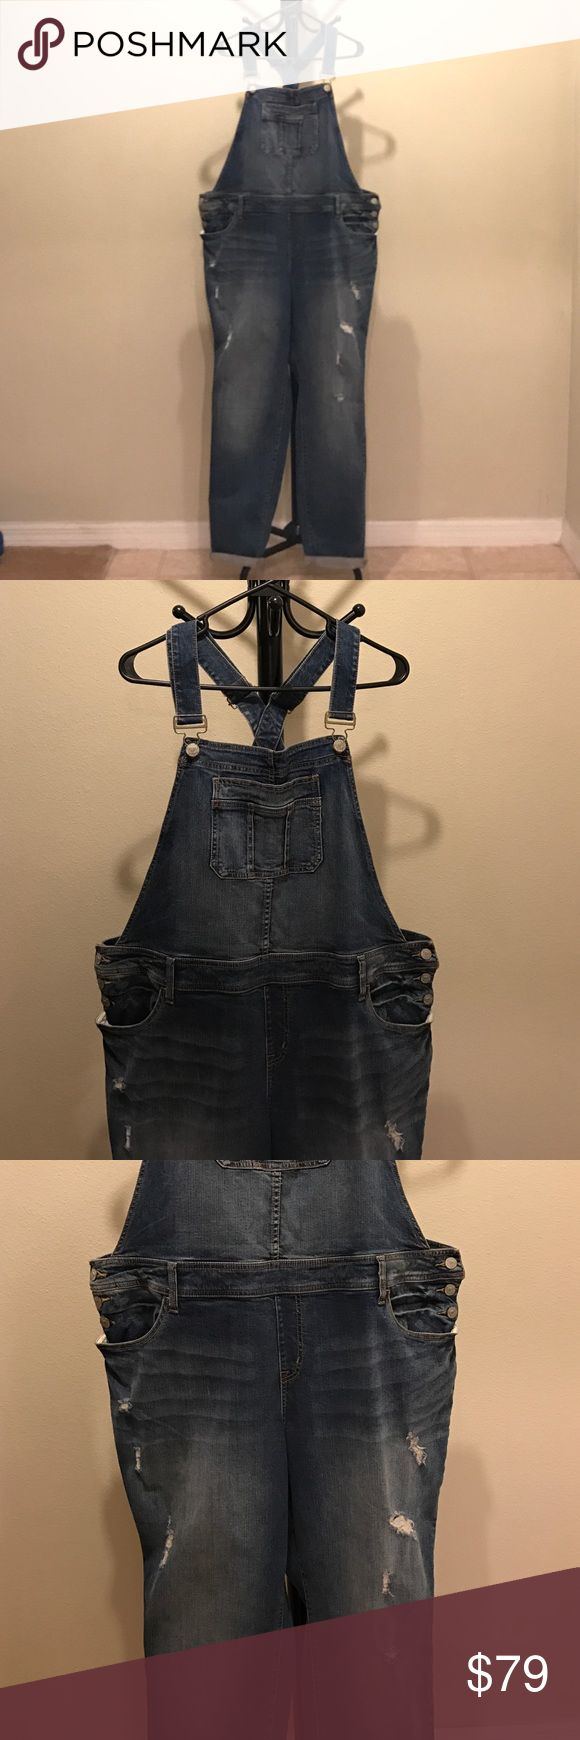 """PRICE FIRM NWT W/ destruction fading overall jeans Medium wash with destruction & fading overall jeans. Size 20 Regular. Mid-rise. ~30"""" inseam. Can wear the legs rolled or straight. torrid Jeans Overalls"""